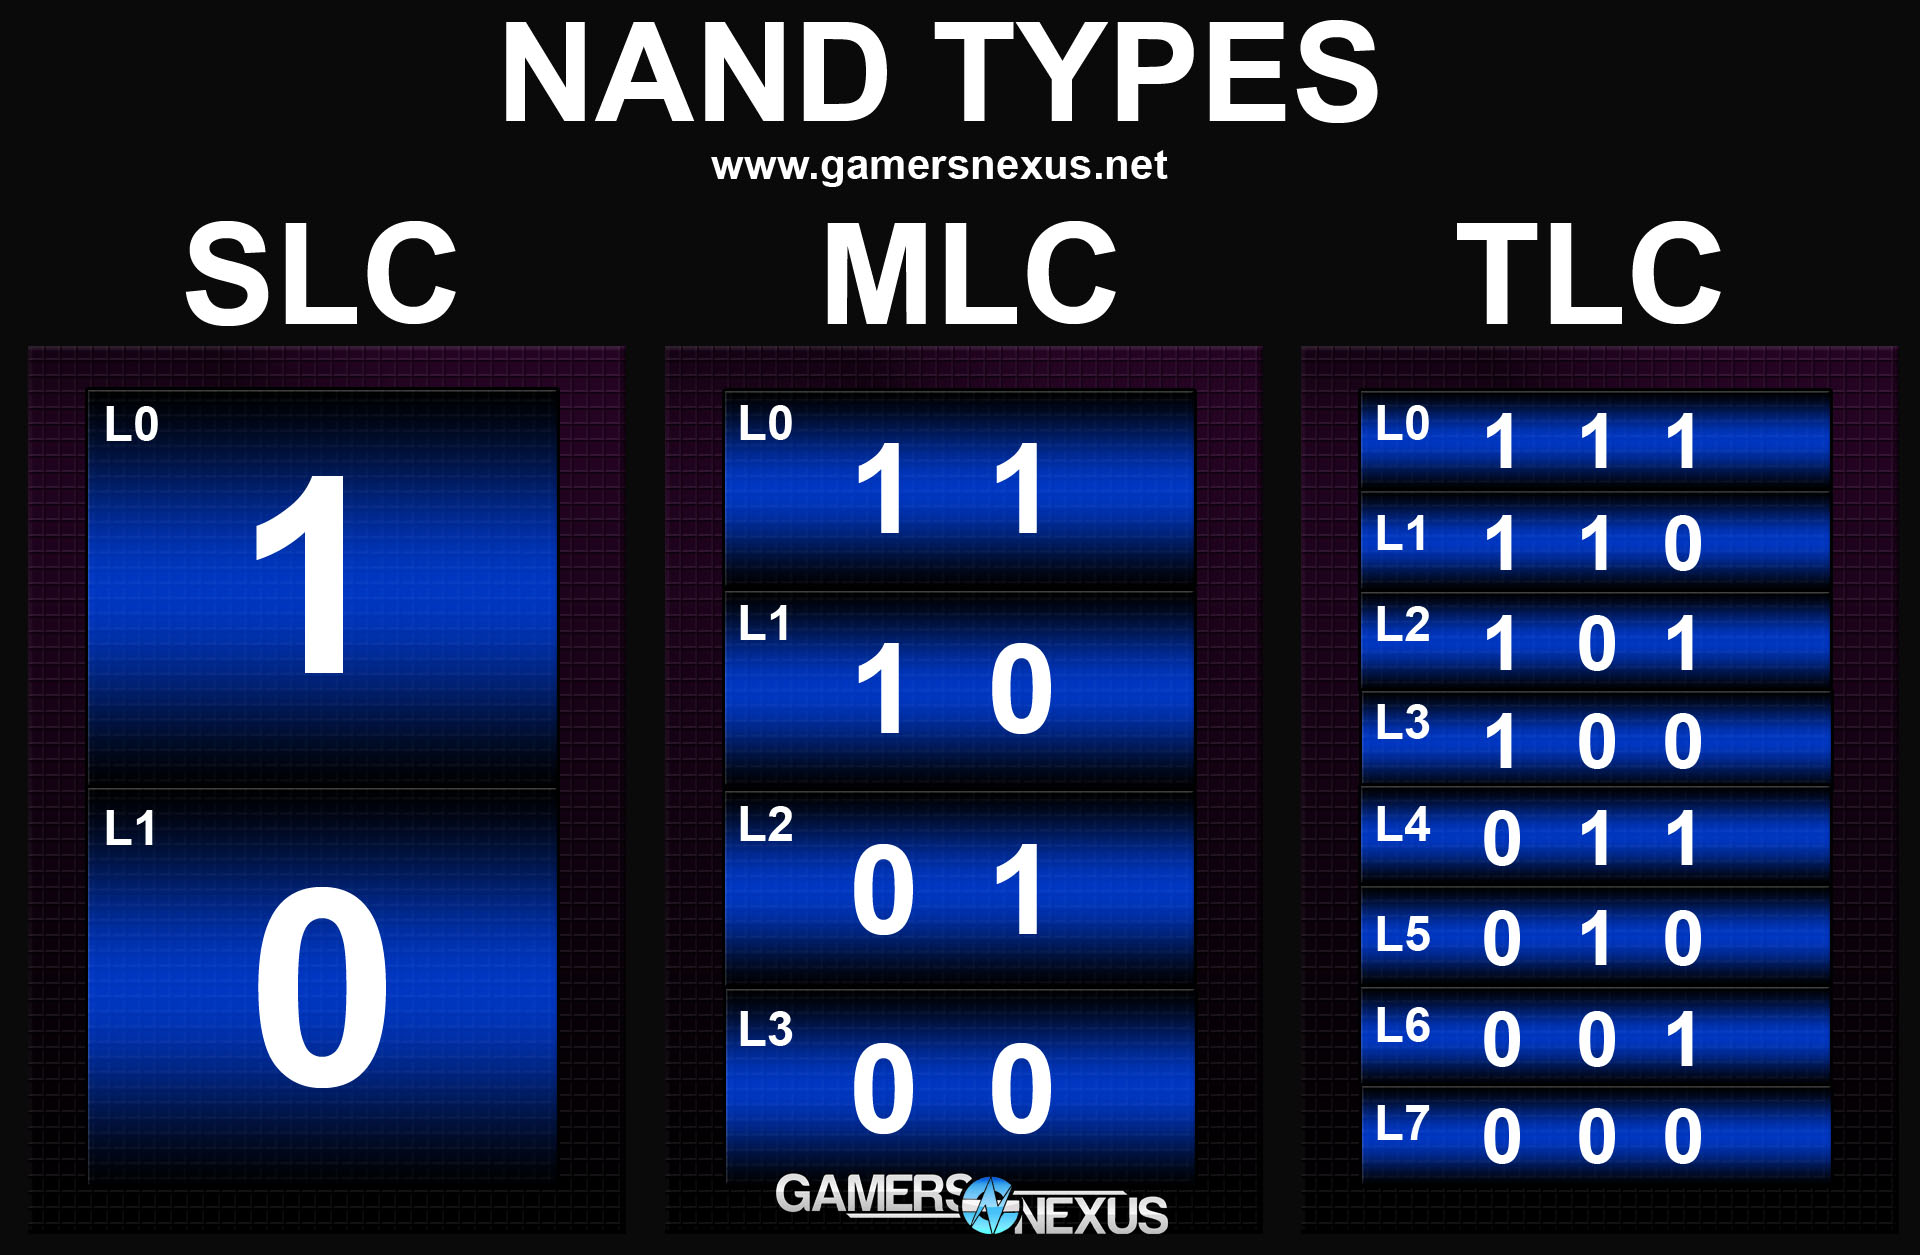 nand-types-1